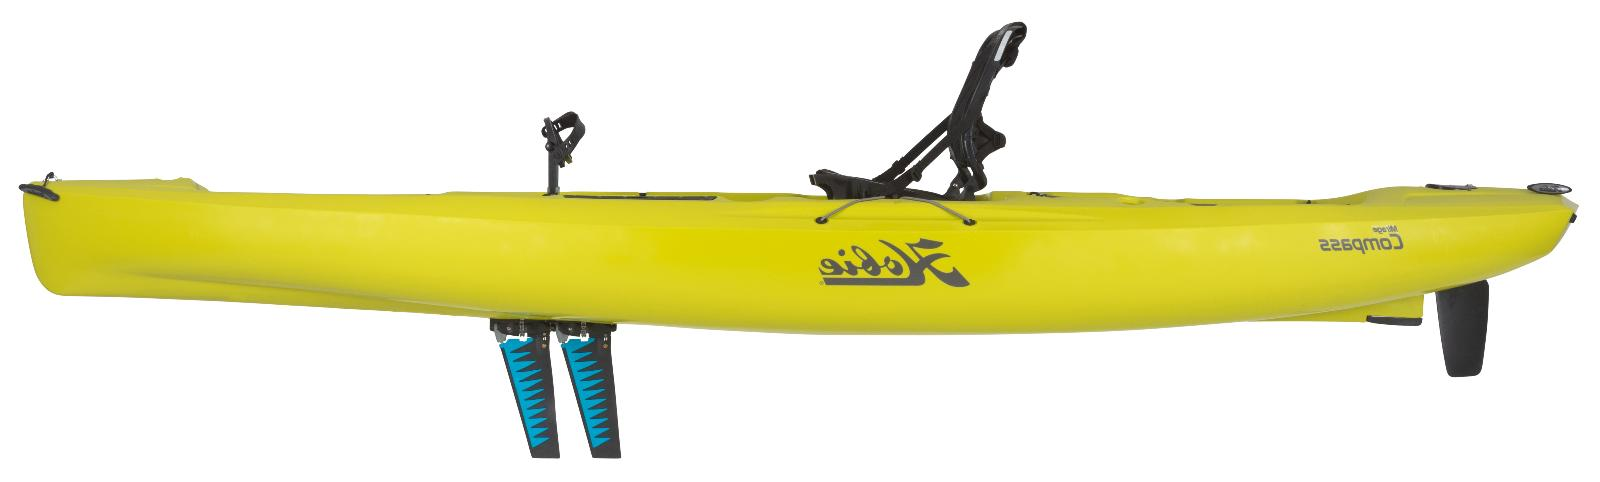 2018 Hobie Mirage Compass Pedal Fishing Seagrass